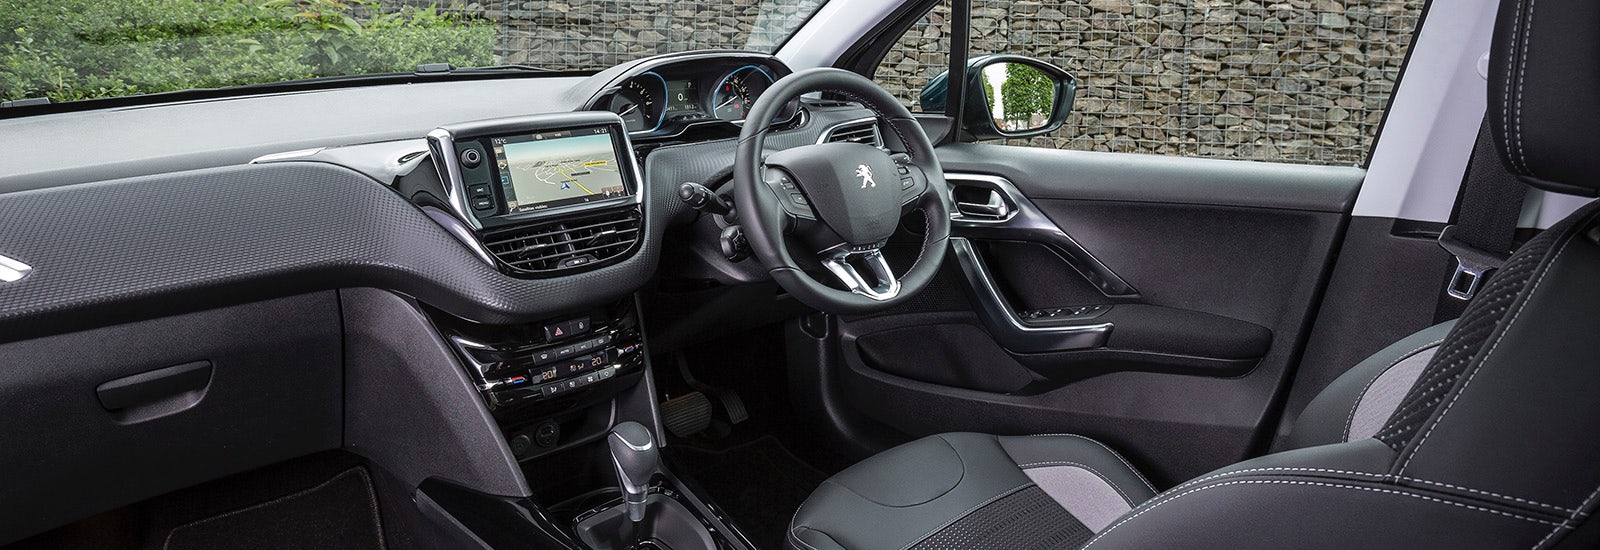 peugeot 2008 size and dimensions guide   carwow